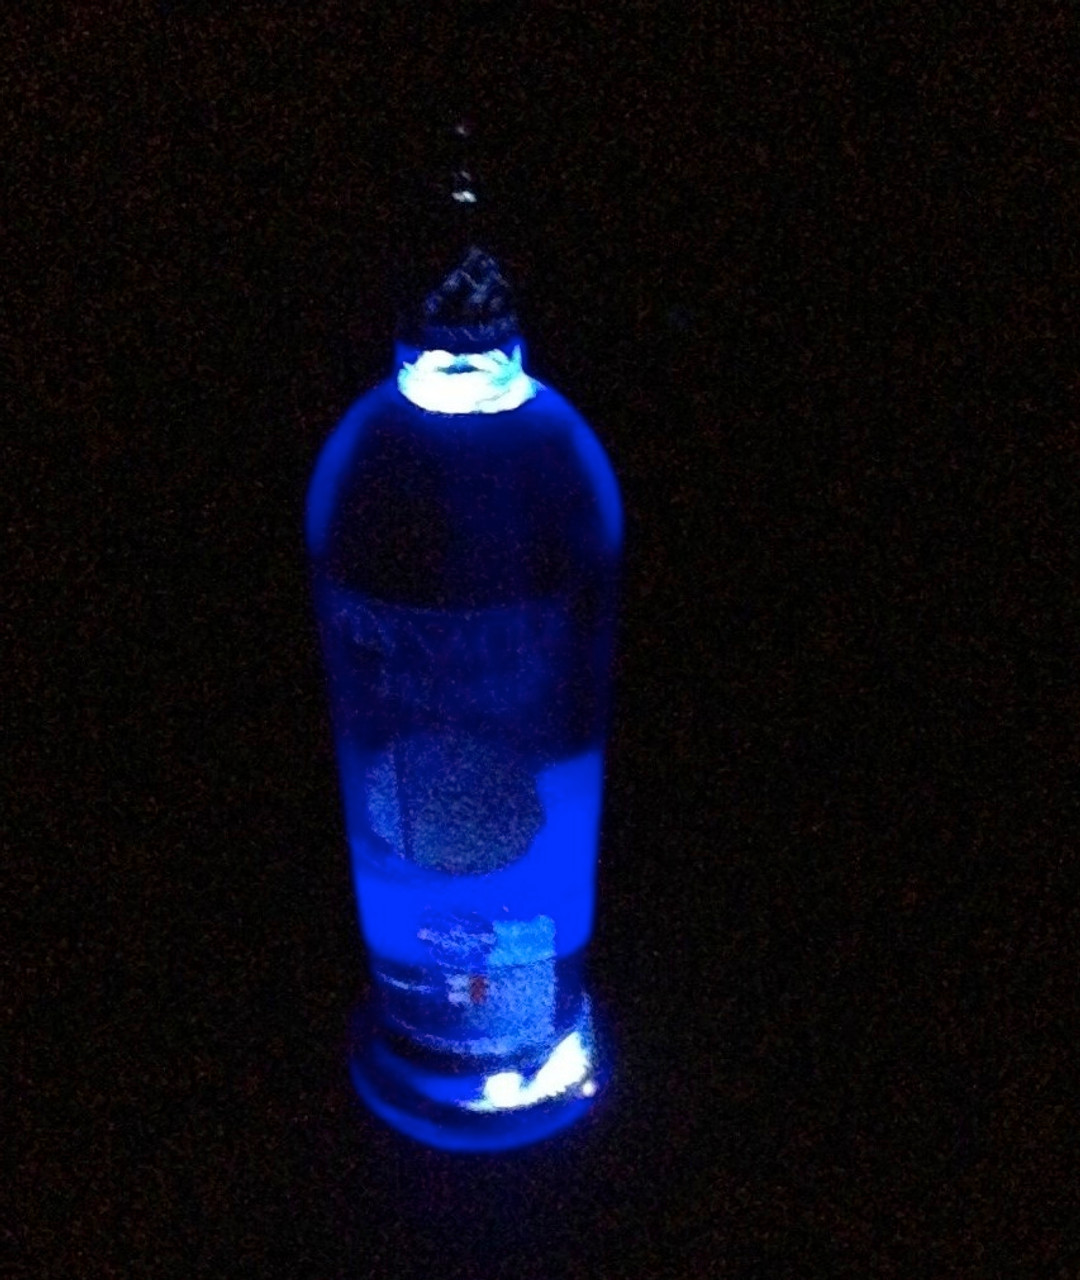 GLOW Bottle, Service, VIP, Glow, LED, Illuminate, Bright, Light up, Lit, Glowing, Bar, Restaurant, Glassware, accent, Bottles, Display, Glorifier, shine, Bright, Products, sparkler, service, bartender, barback, Belvedere